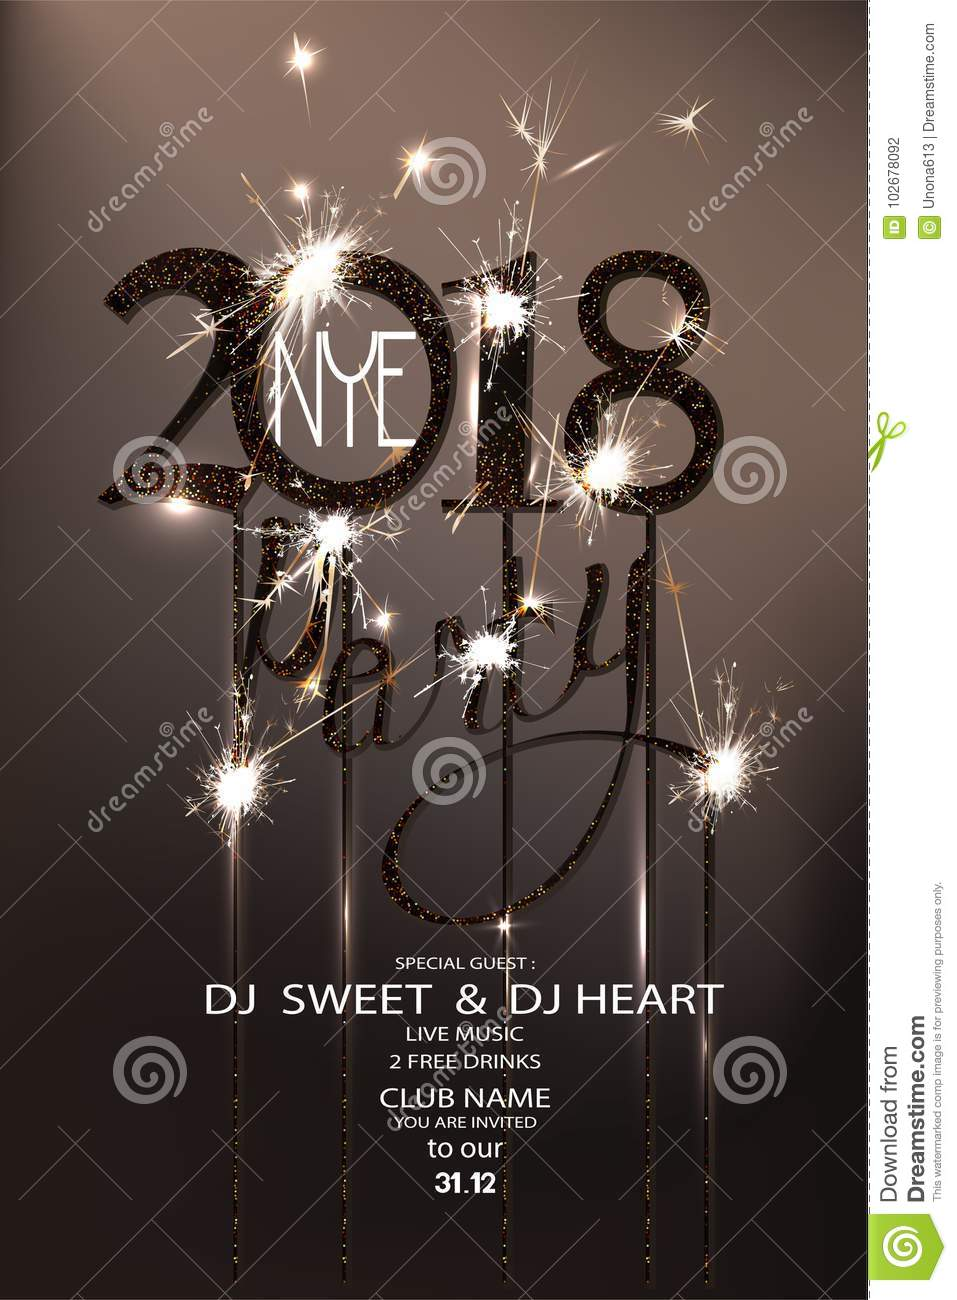 new year eve 2018 party invitation card with sparklers and serpentine